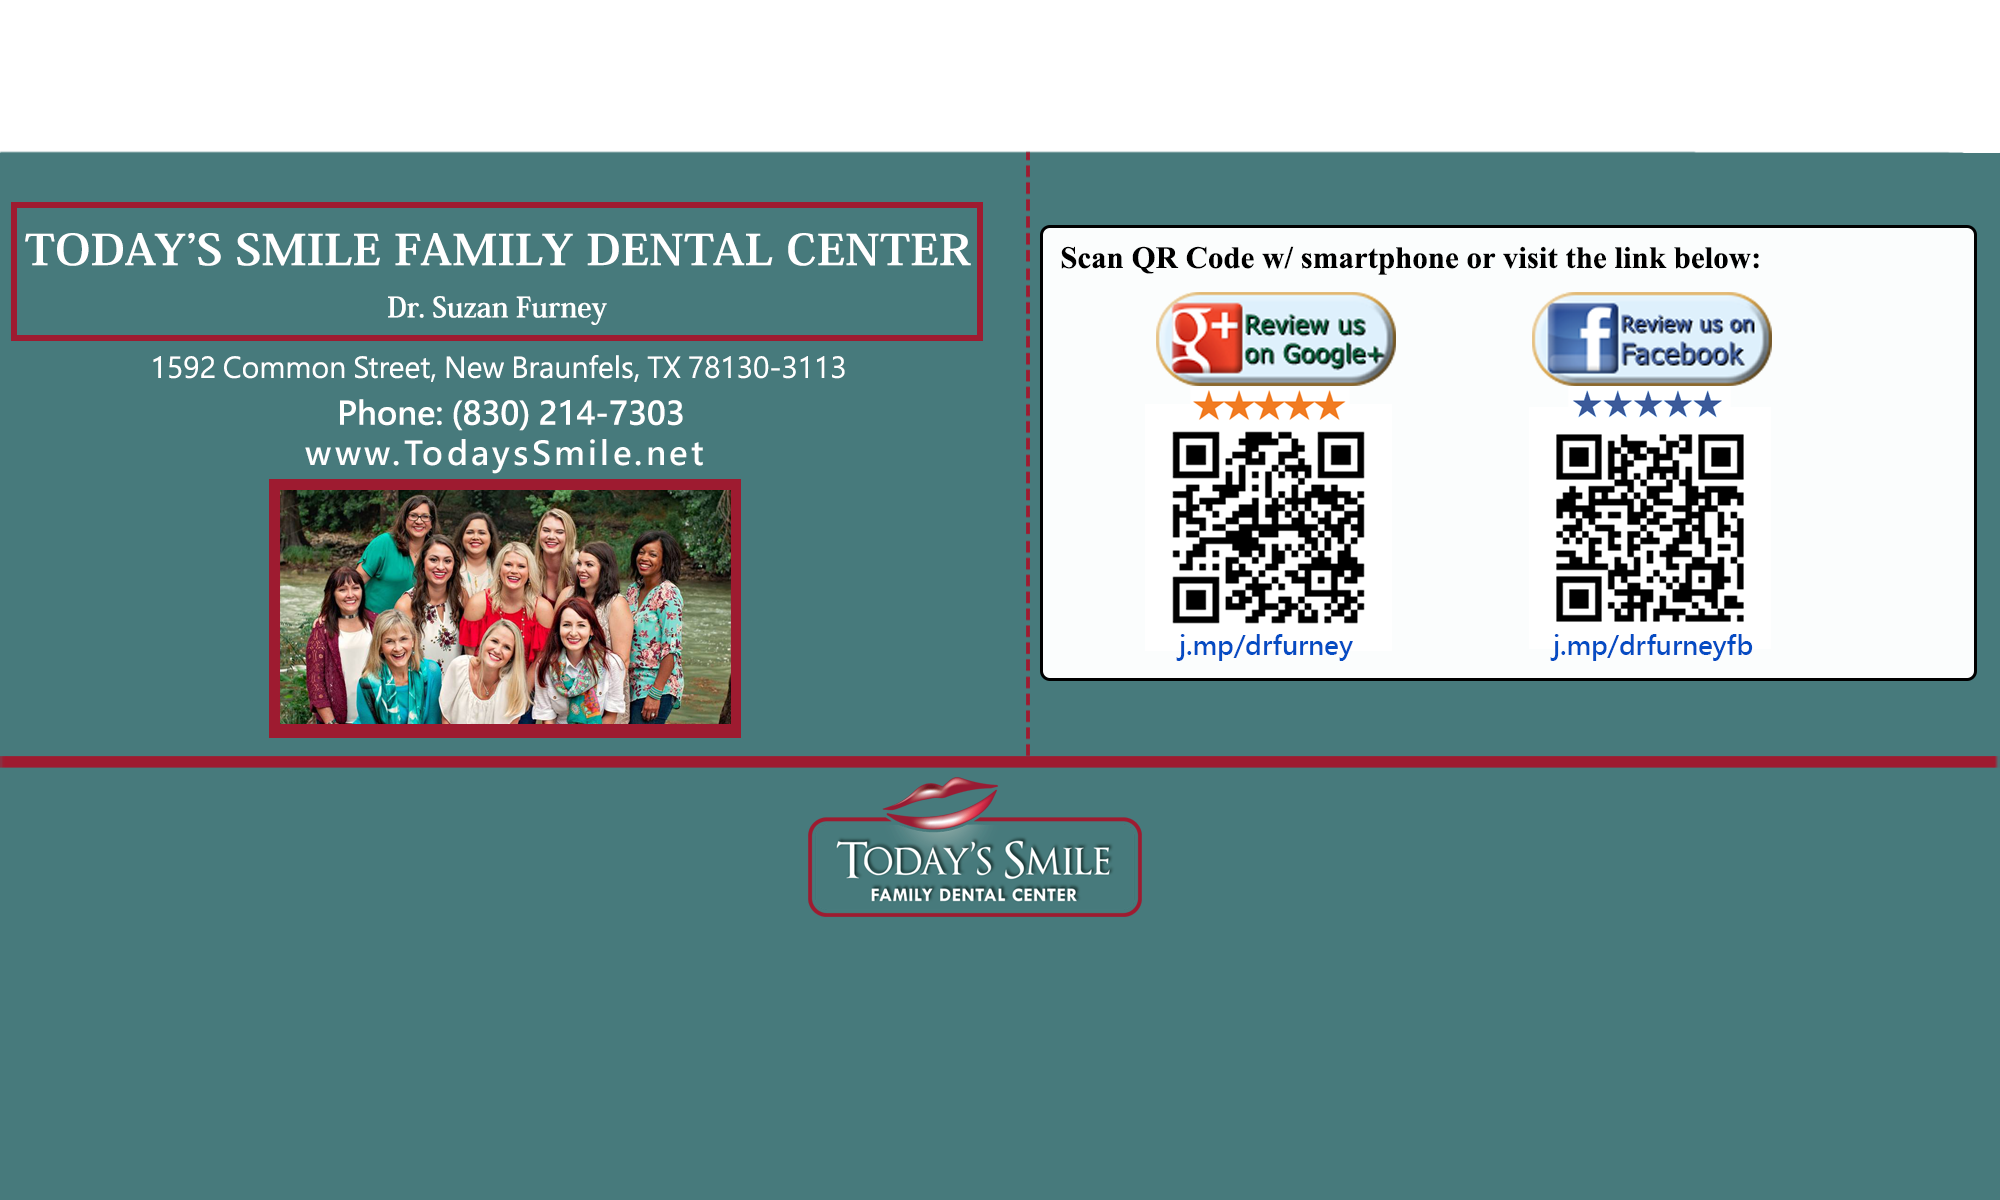 Today's Smile Family Dental Center